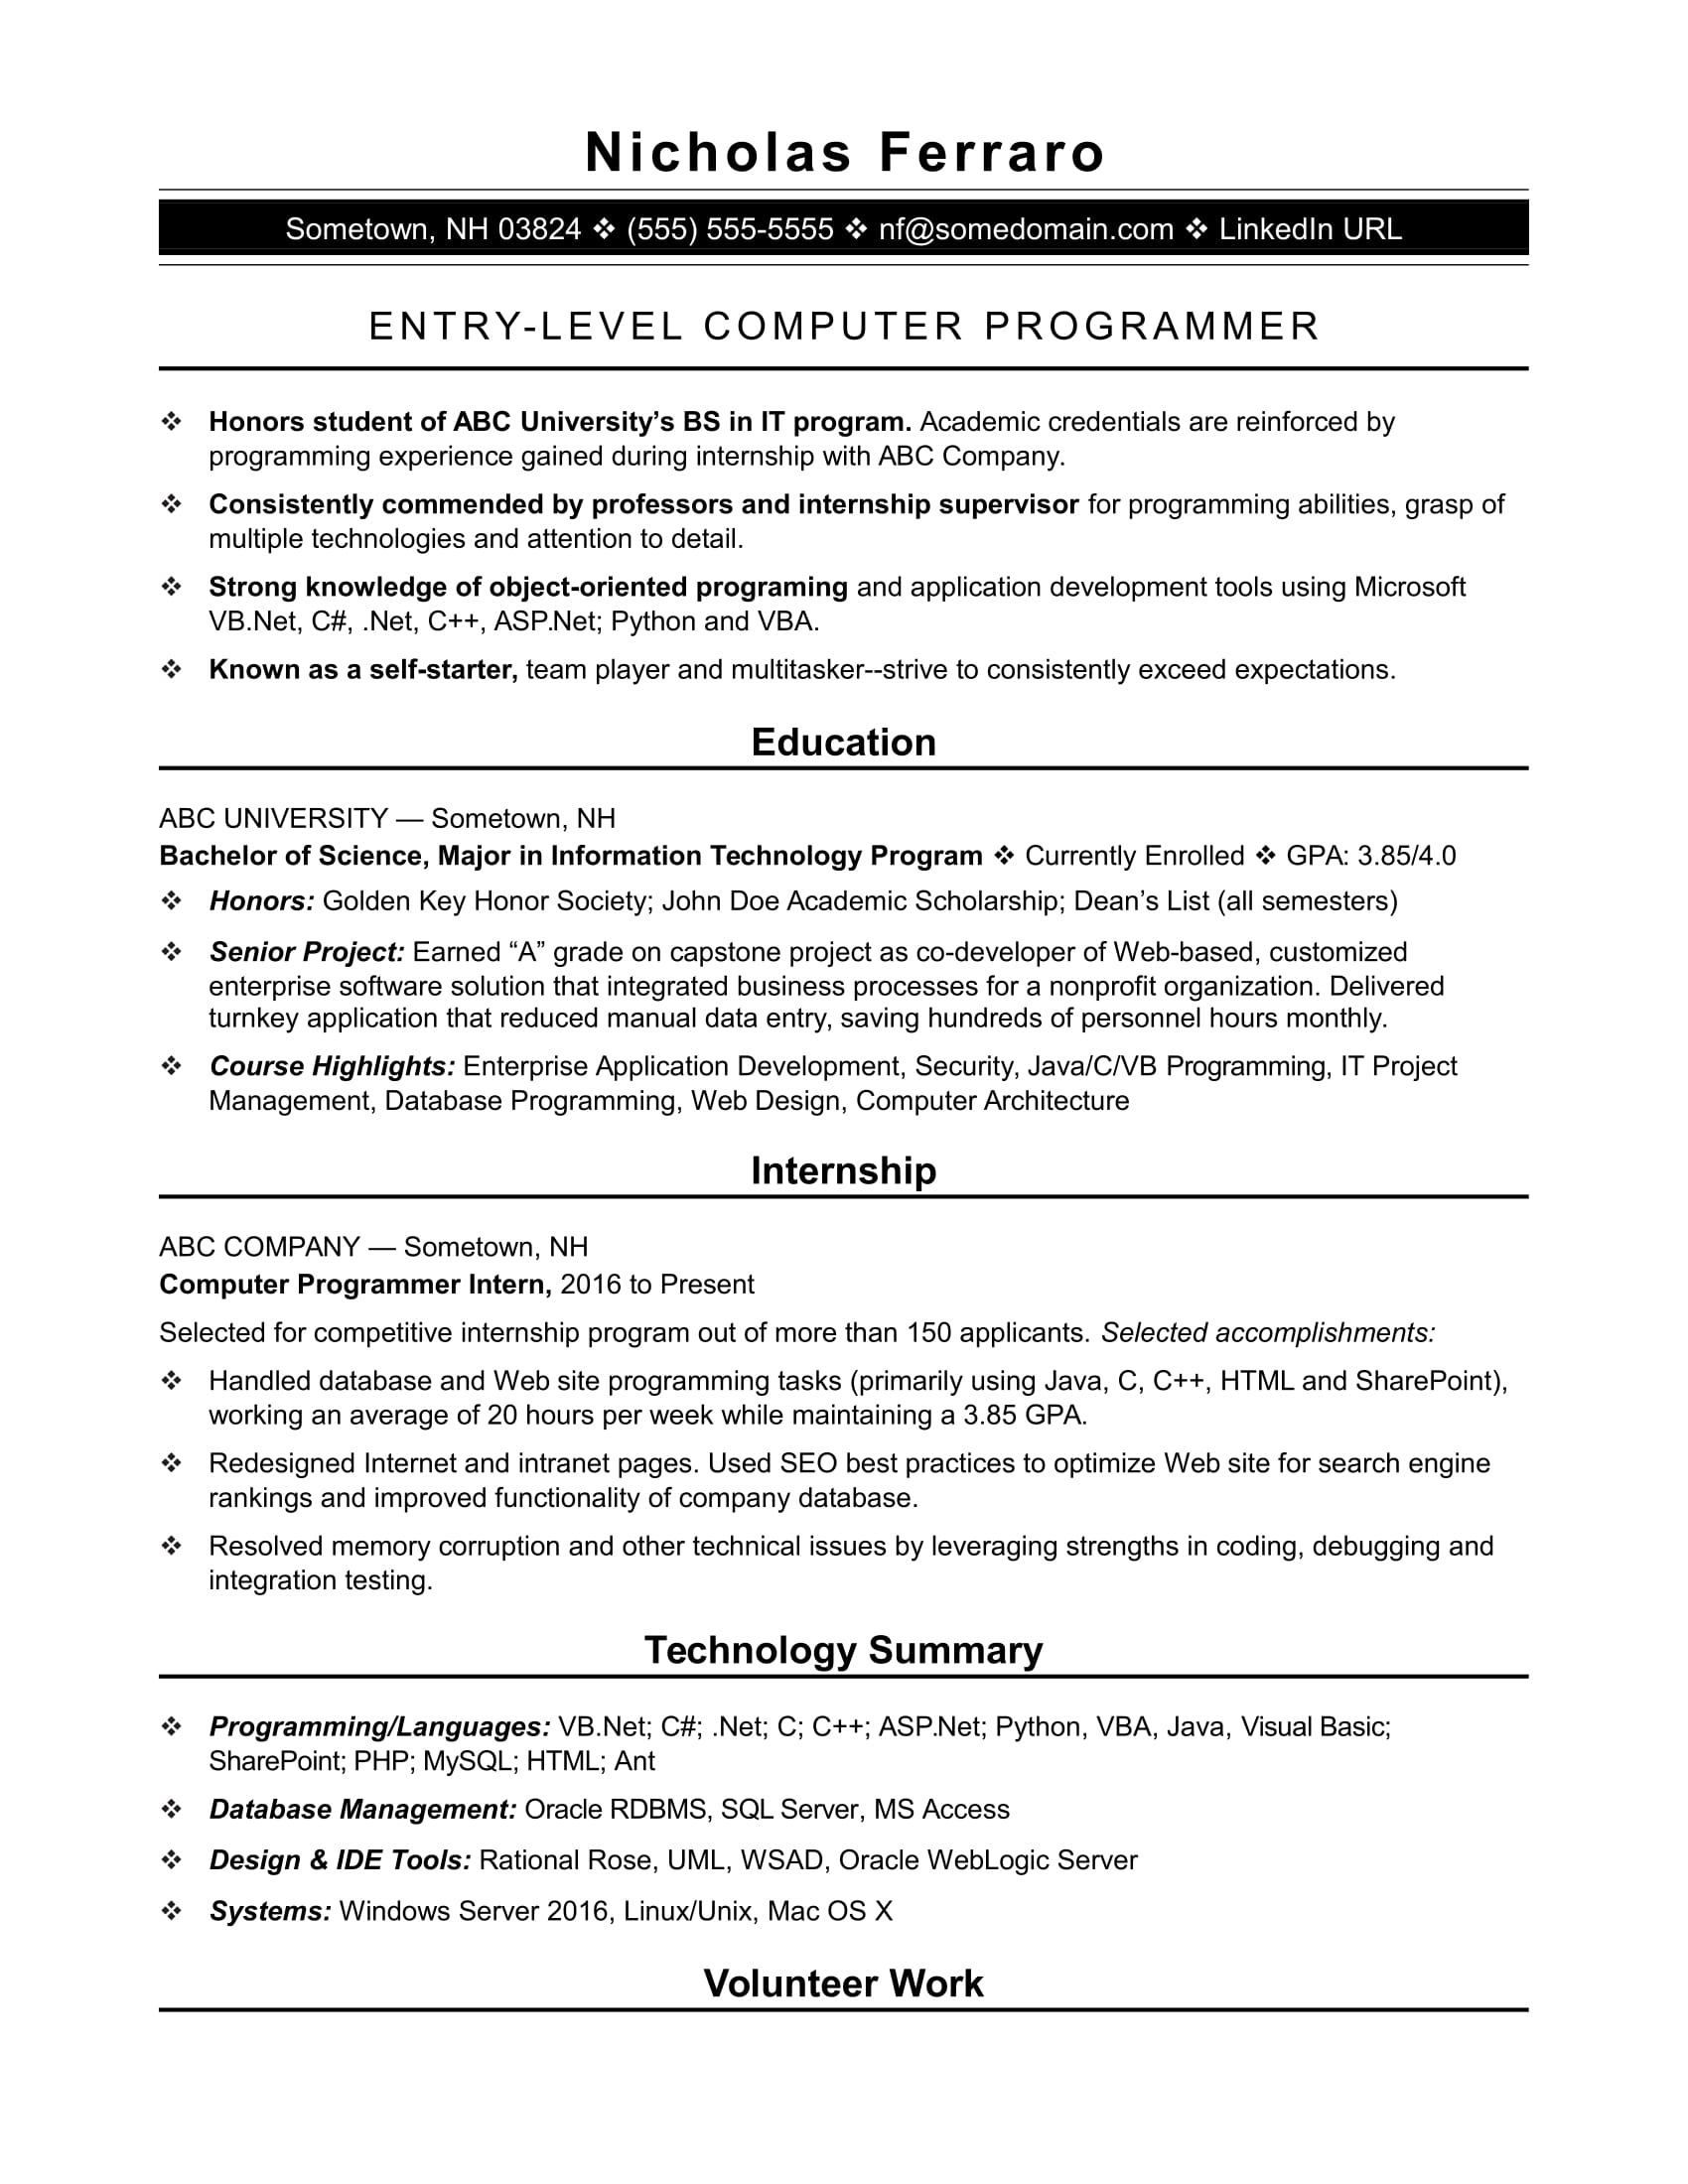 sample resume for an entry level computer programmer - Sample Resume Internship